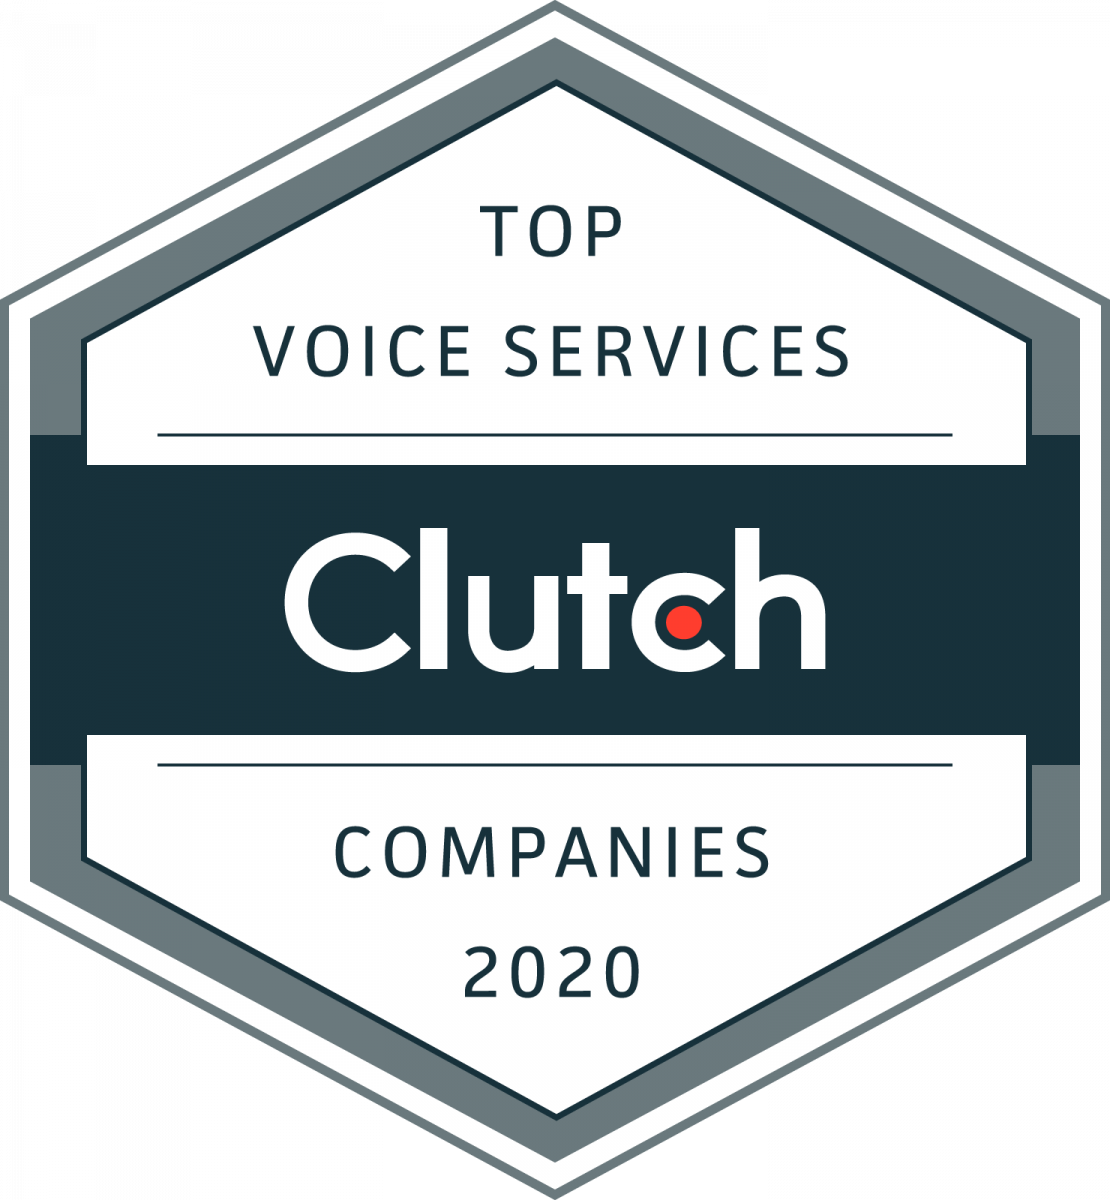 Smith.ai Named One of the Top Voice Services Providers in the World by Clutch